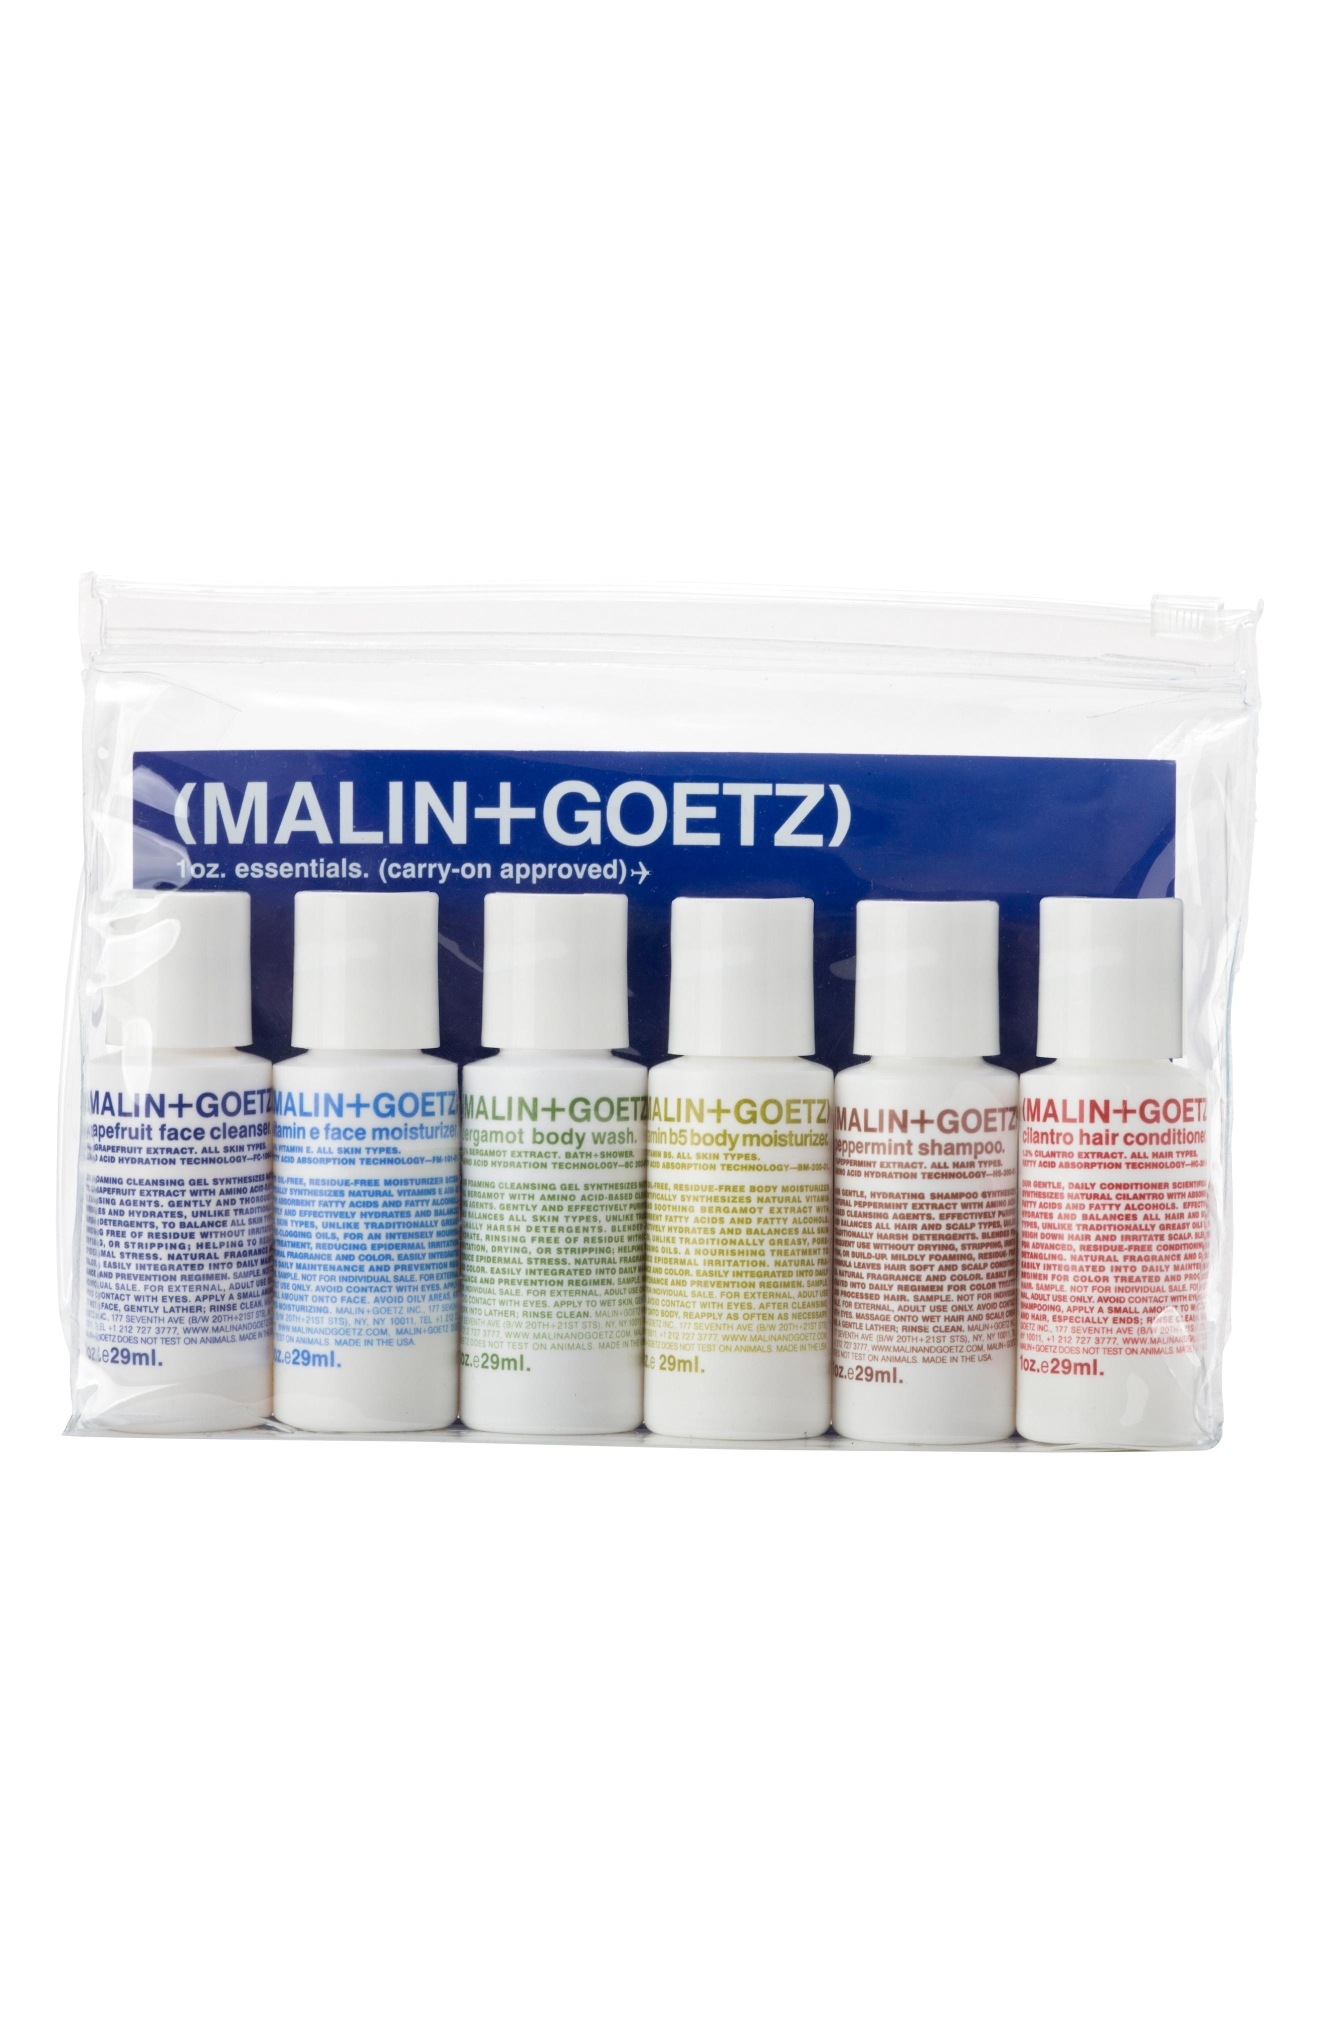 MALIN AND GOETZ - The Essential Kit $30. Buy at shop.nordstrom.com/c/pop-in-olivia-kim (Image: Nordstrom)